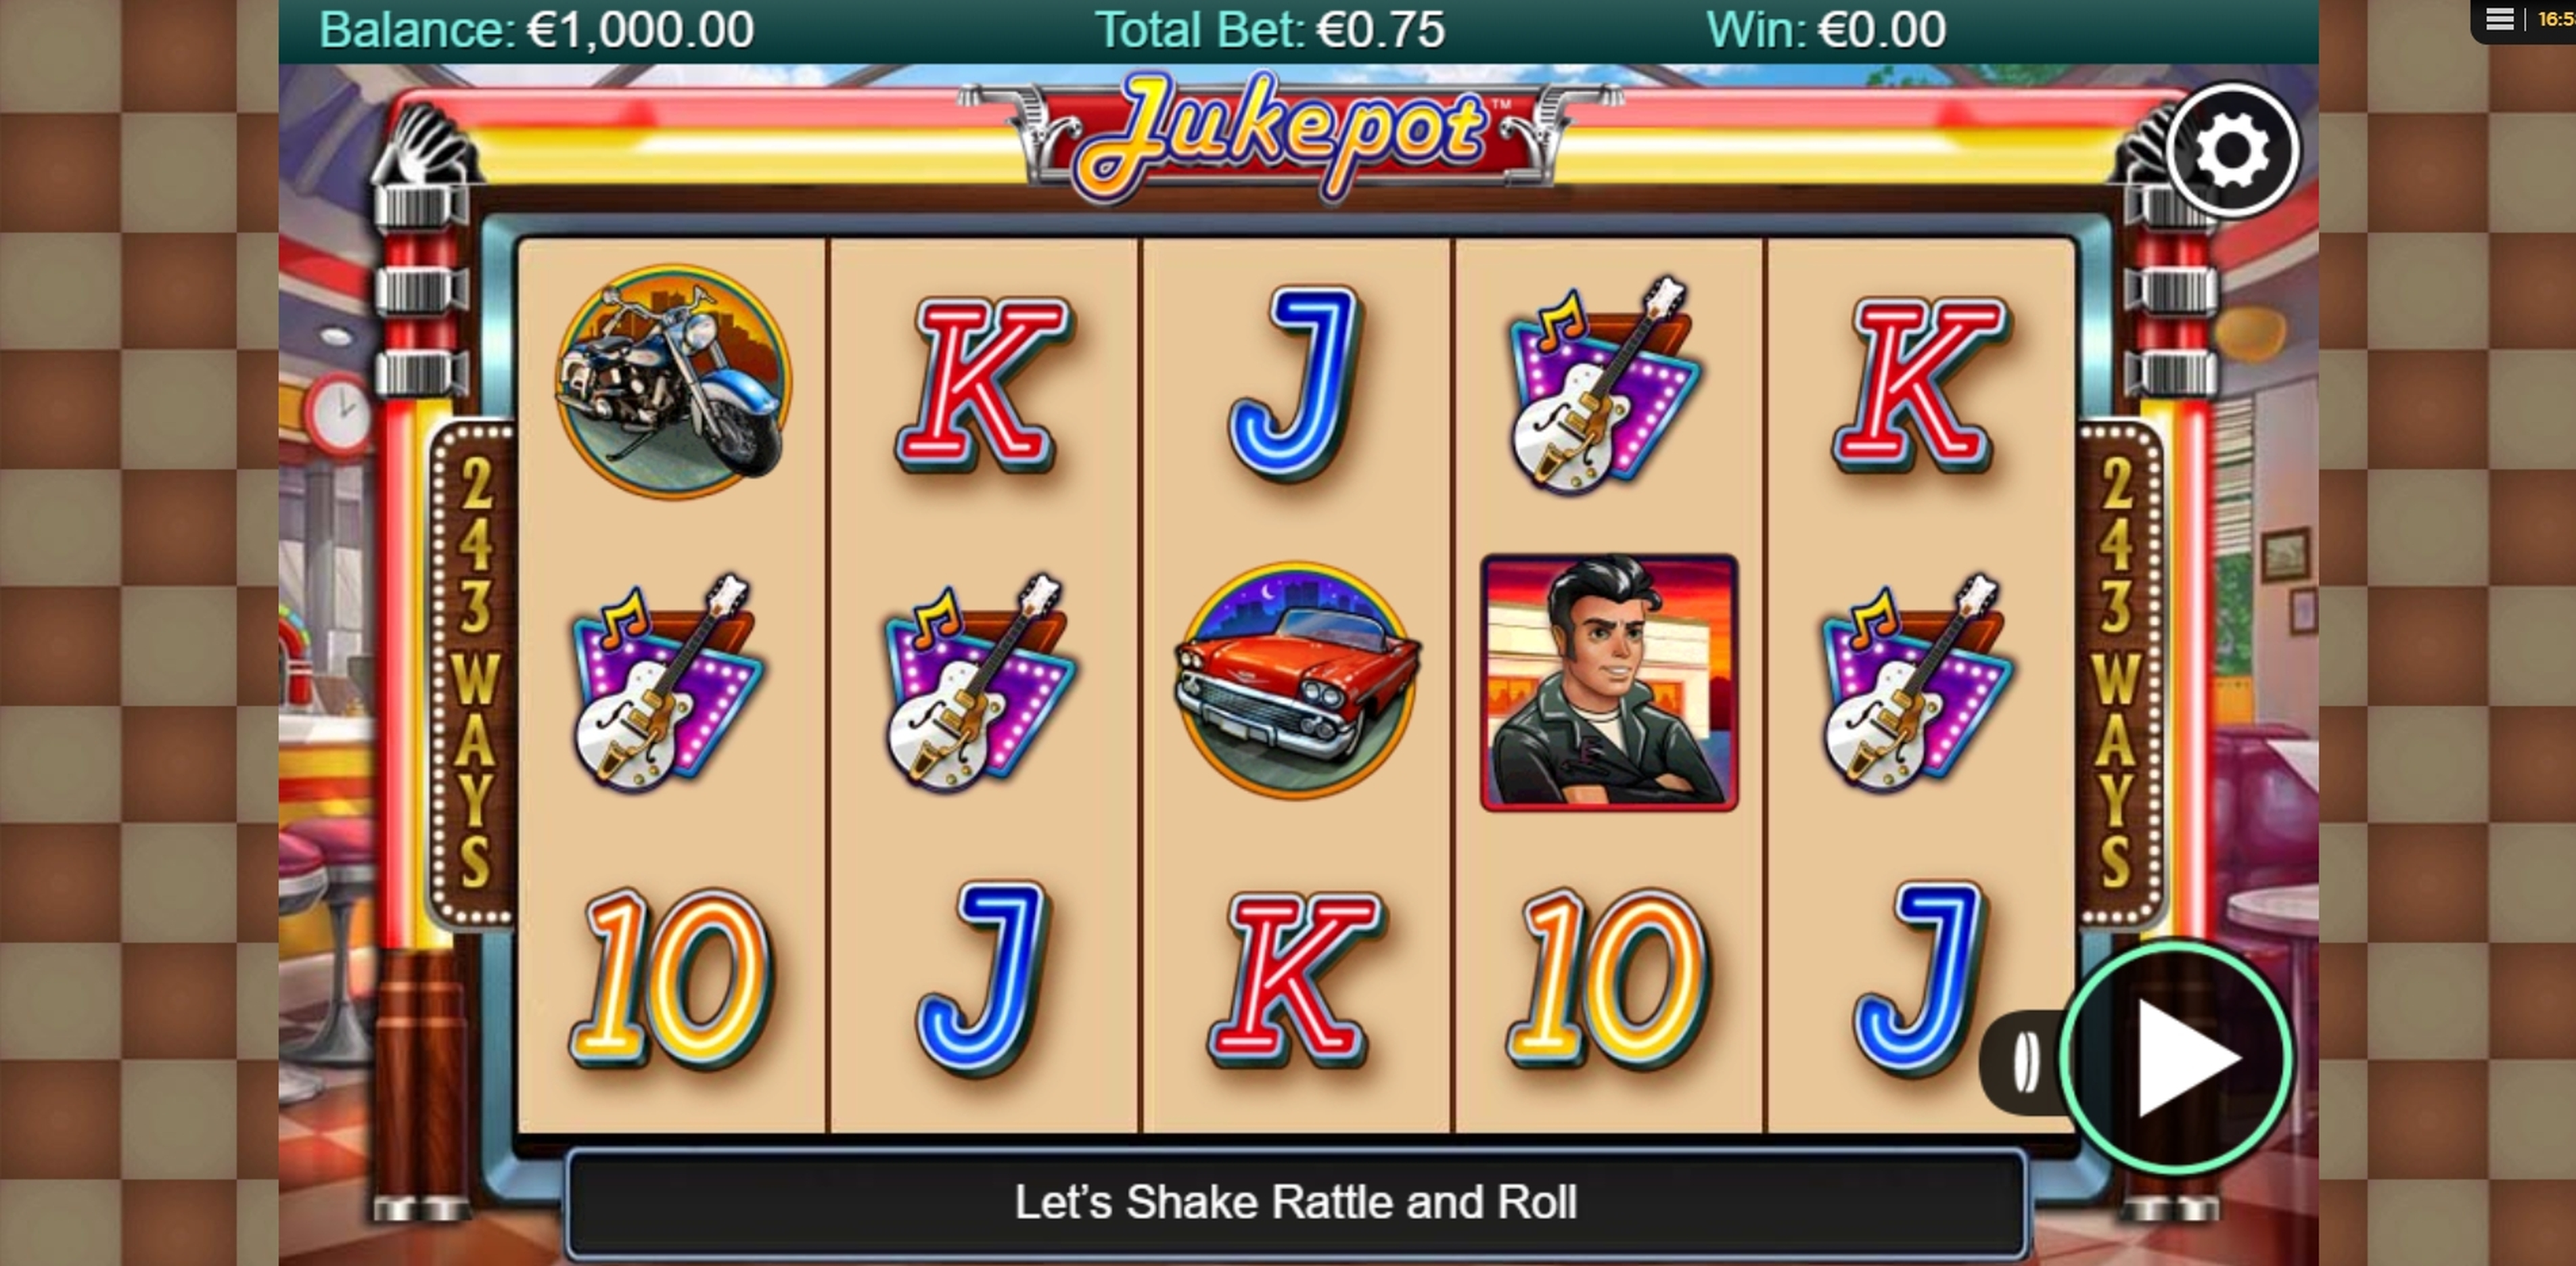 Reels in Jukepot Slot Game by NYX Gaming Group